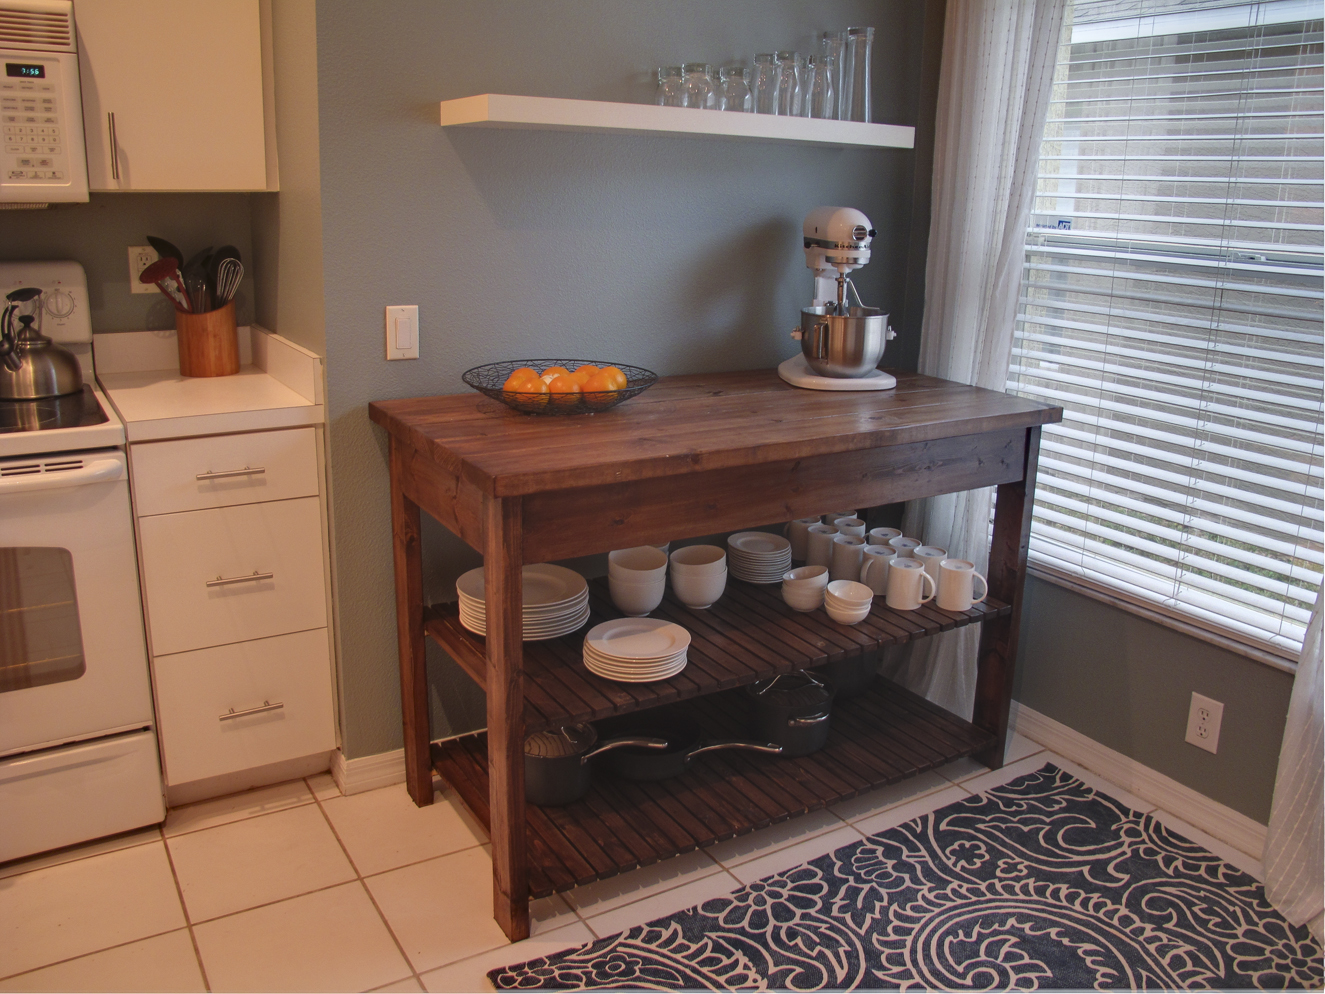 Diy Kitchen Island Ideas domestic jenny: diy kitchen island plans